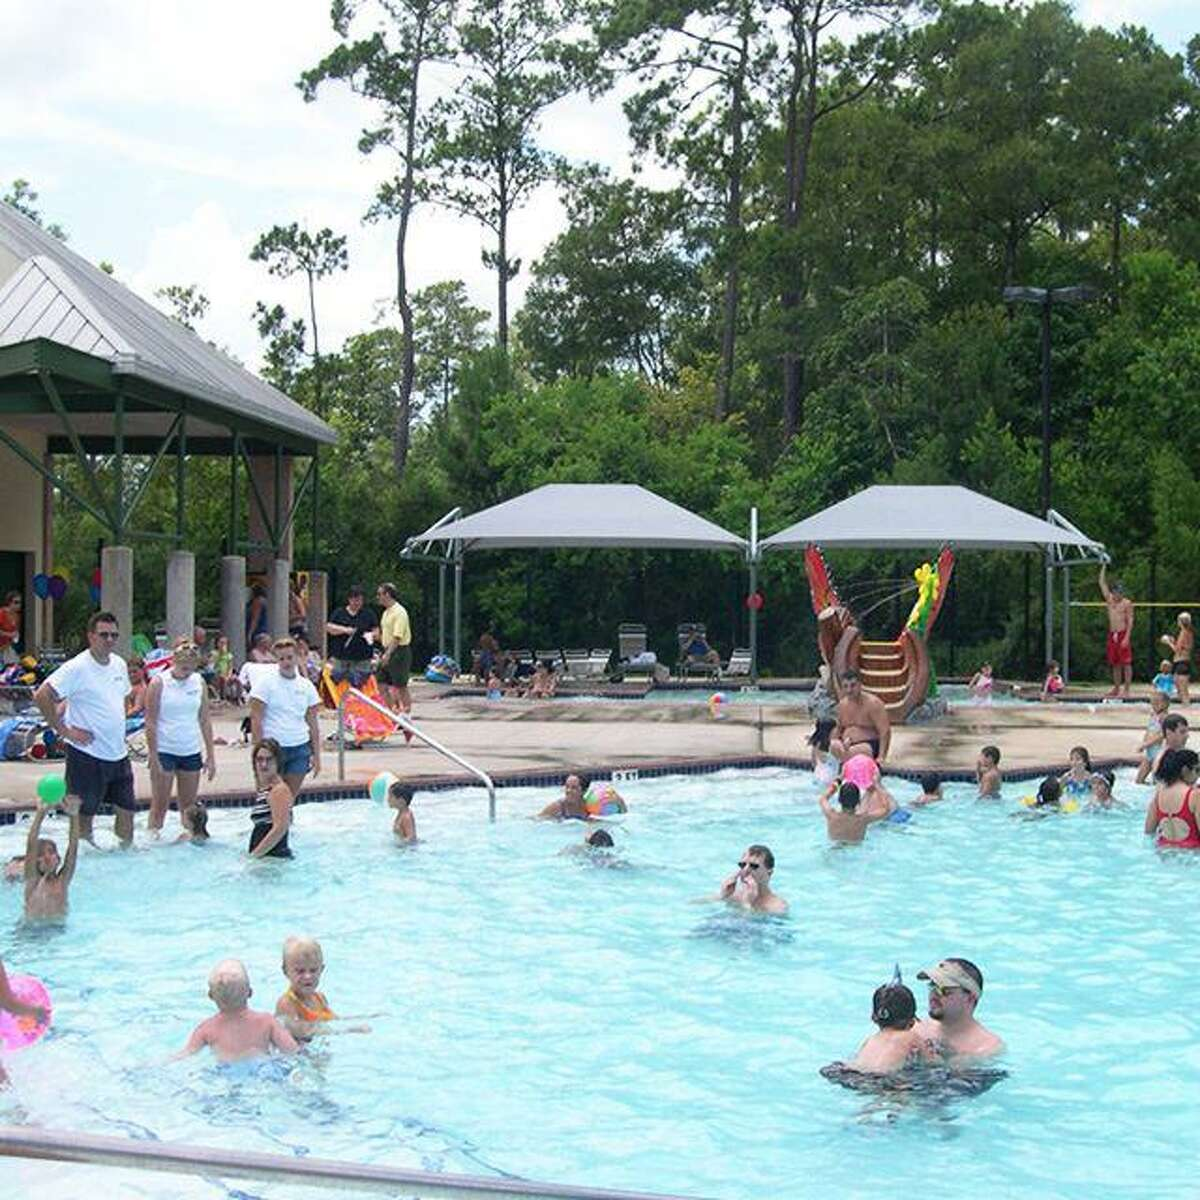 The 2021 township swimming pool season is in the planning stages with hopes that a full season can occur, said township Parks and Recreation Department Manager Chris Nunes. The pre-season is slated to begin at some pools on May 9, with the regular season beginning in late May and edning on Aug. 10. A limited post-season schedule is planned from Aug. 11 through Sept. 6.